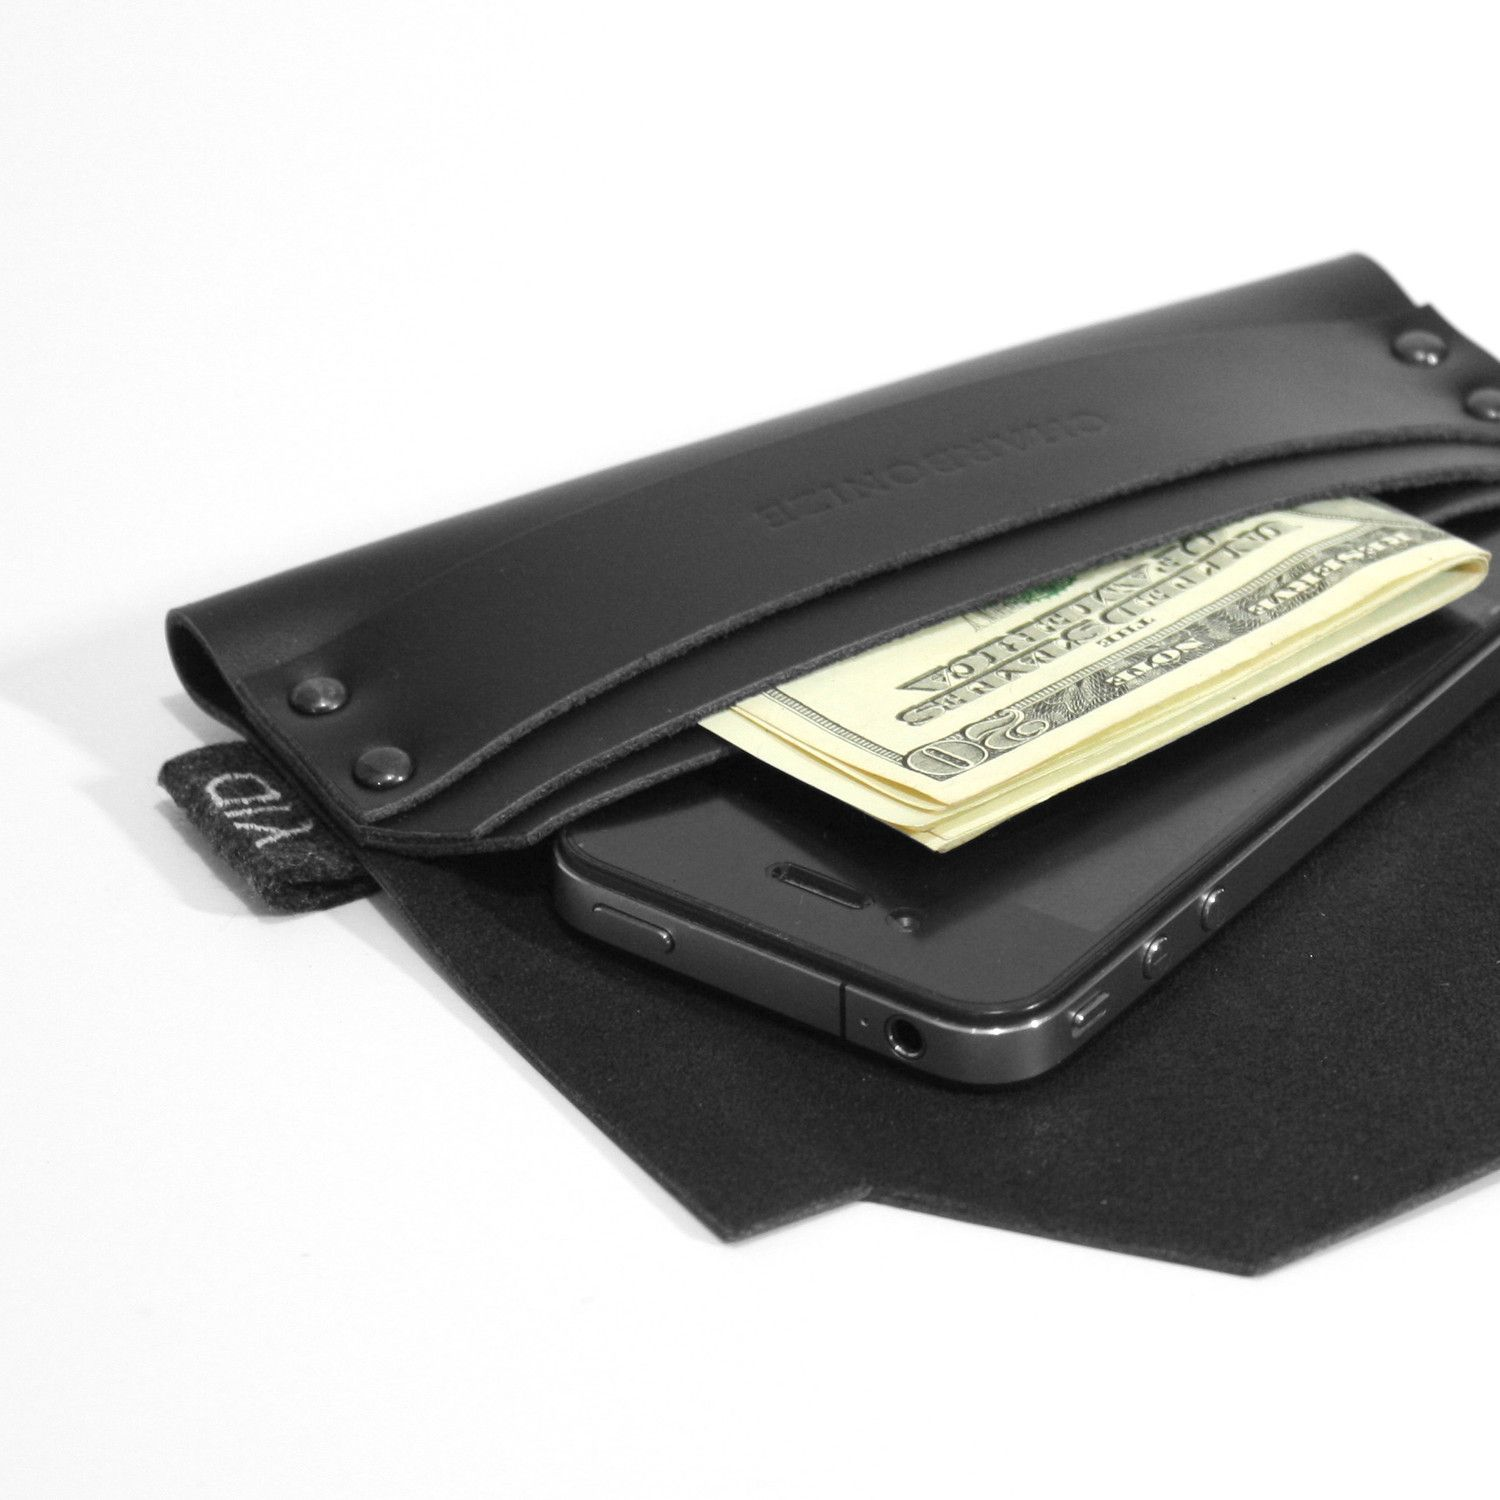 #iPhone case and wallet #gadgets